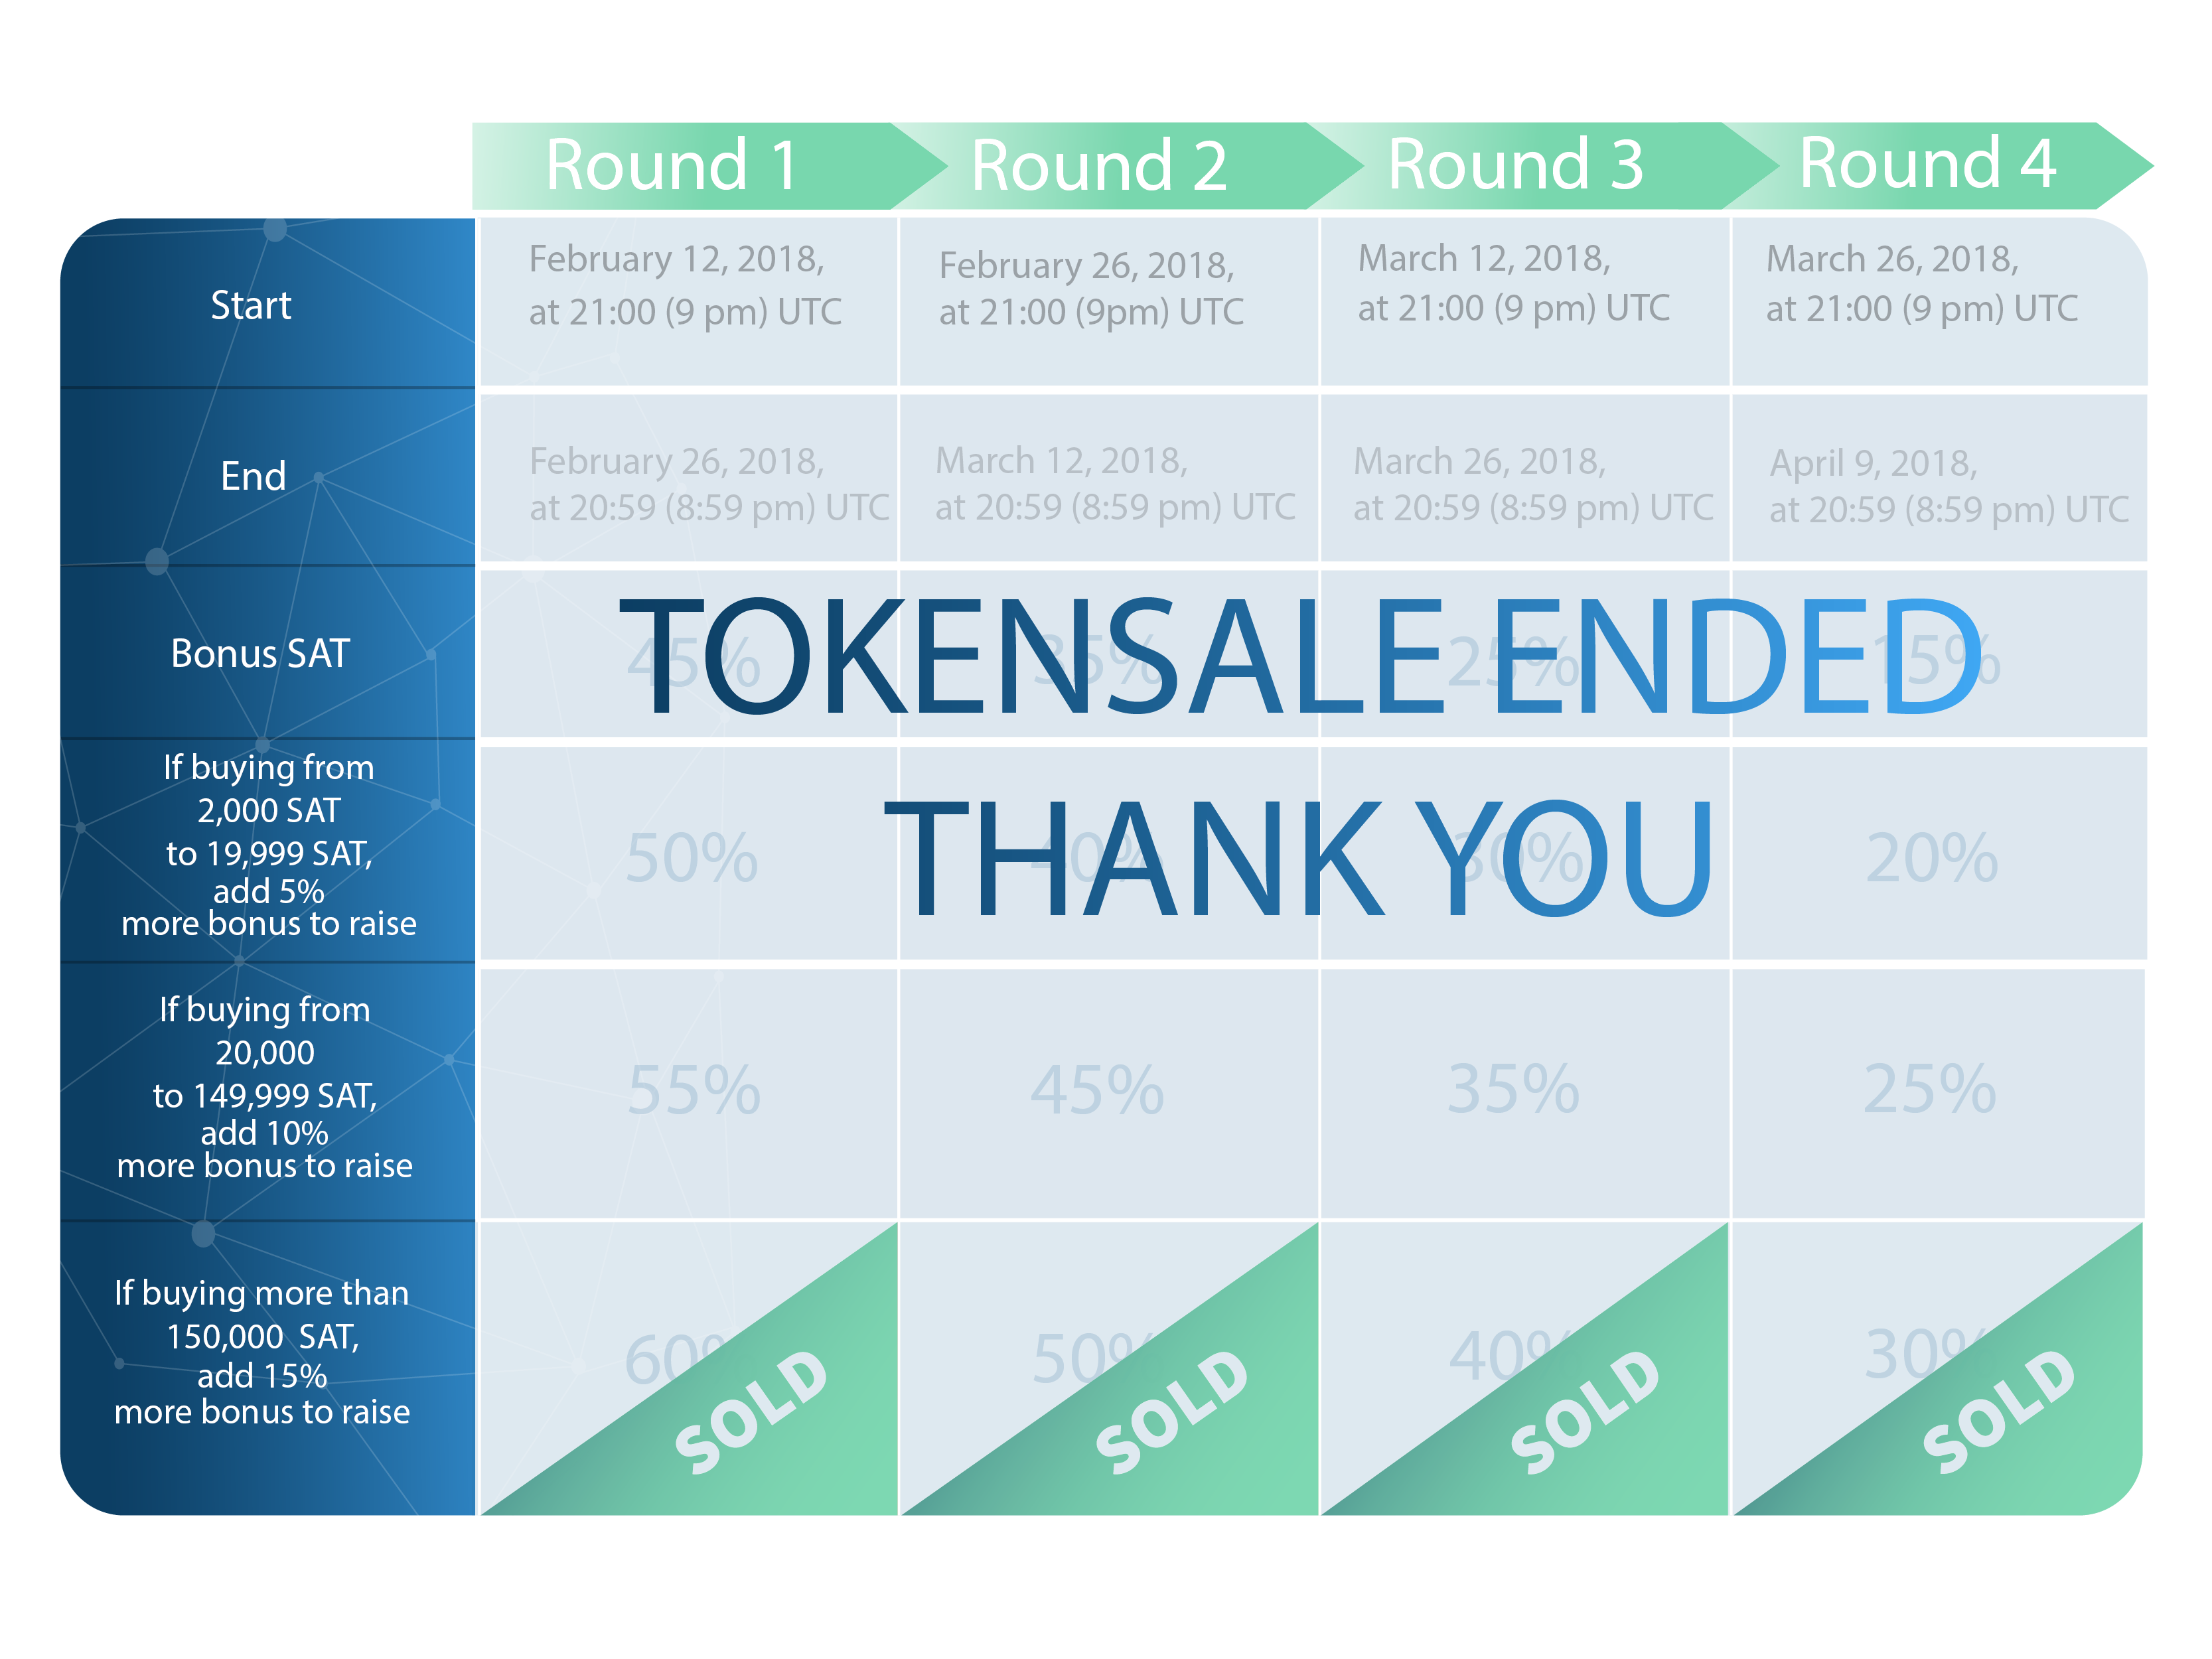 ICO_timeline__Round_ENDED2